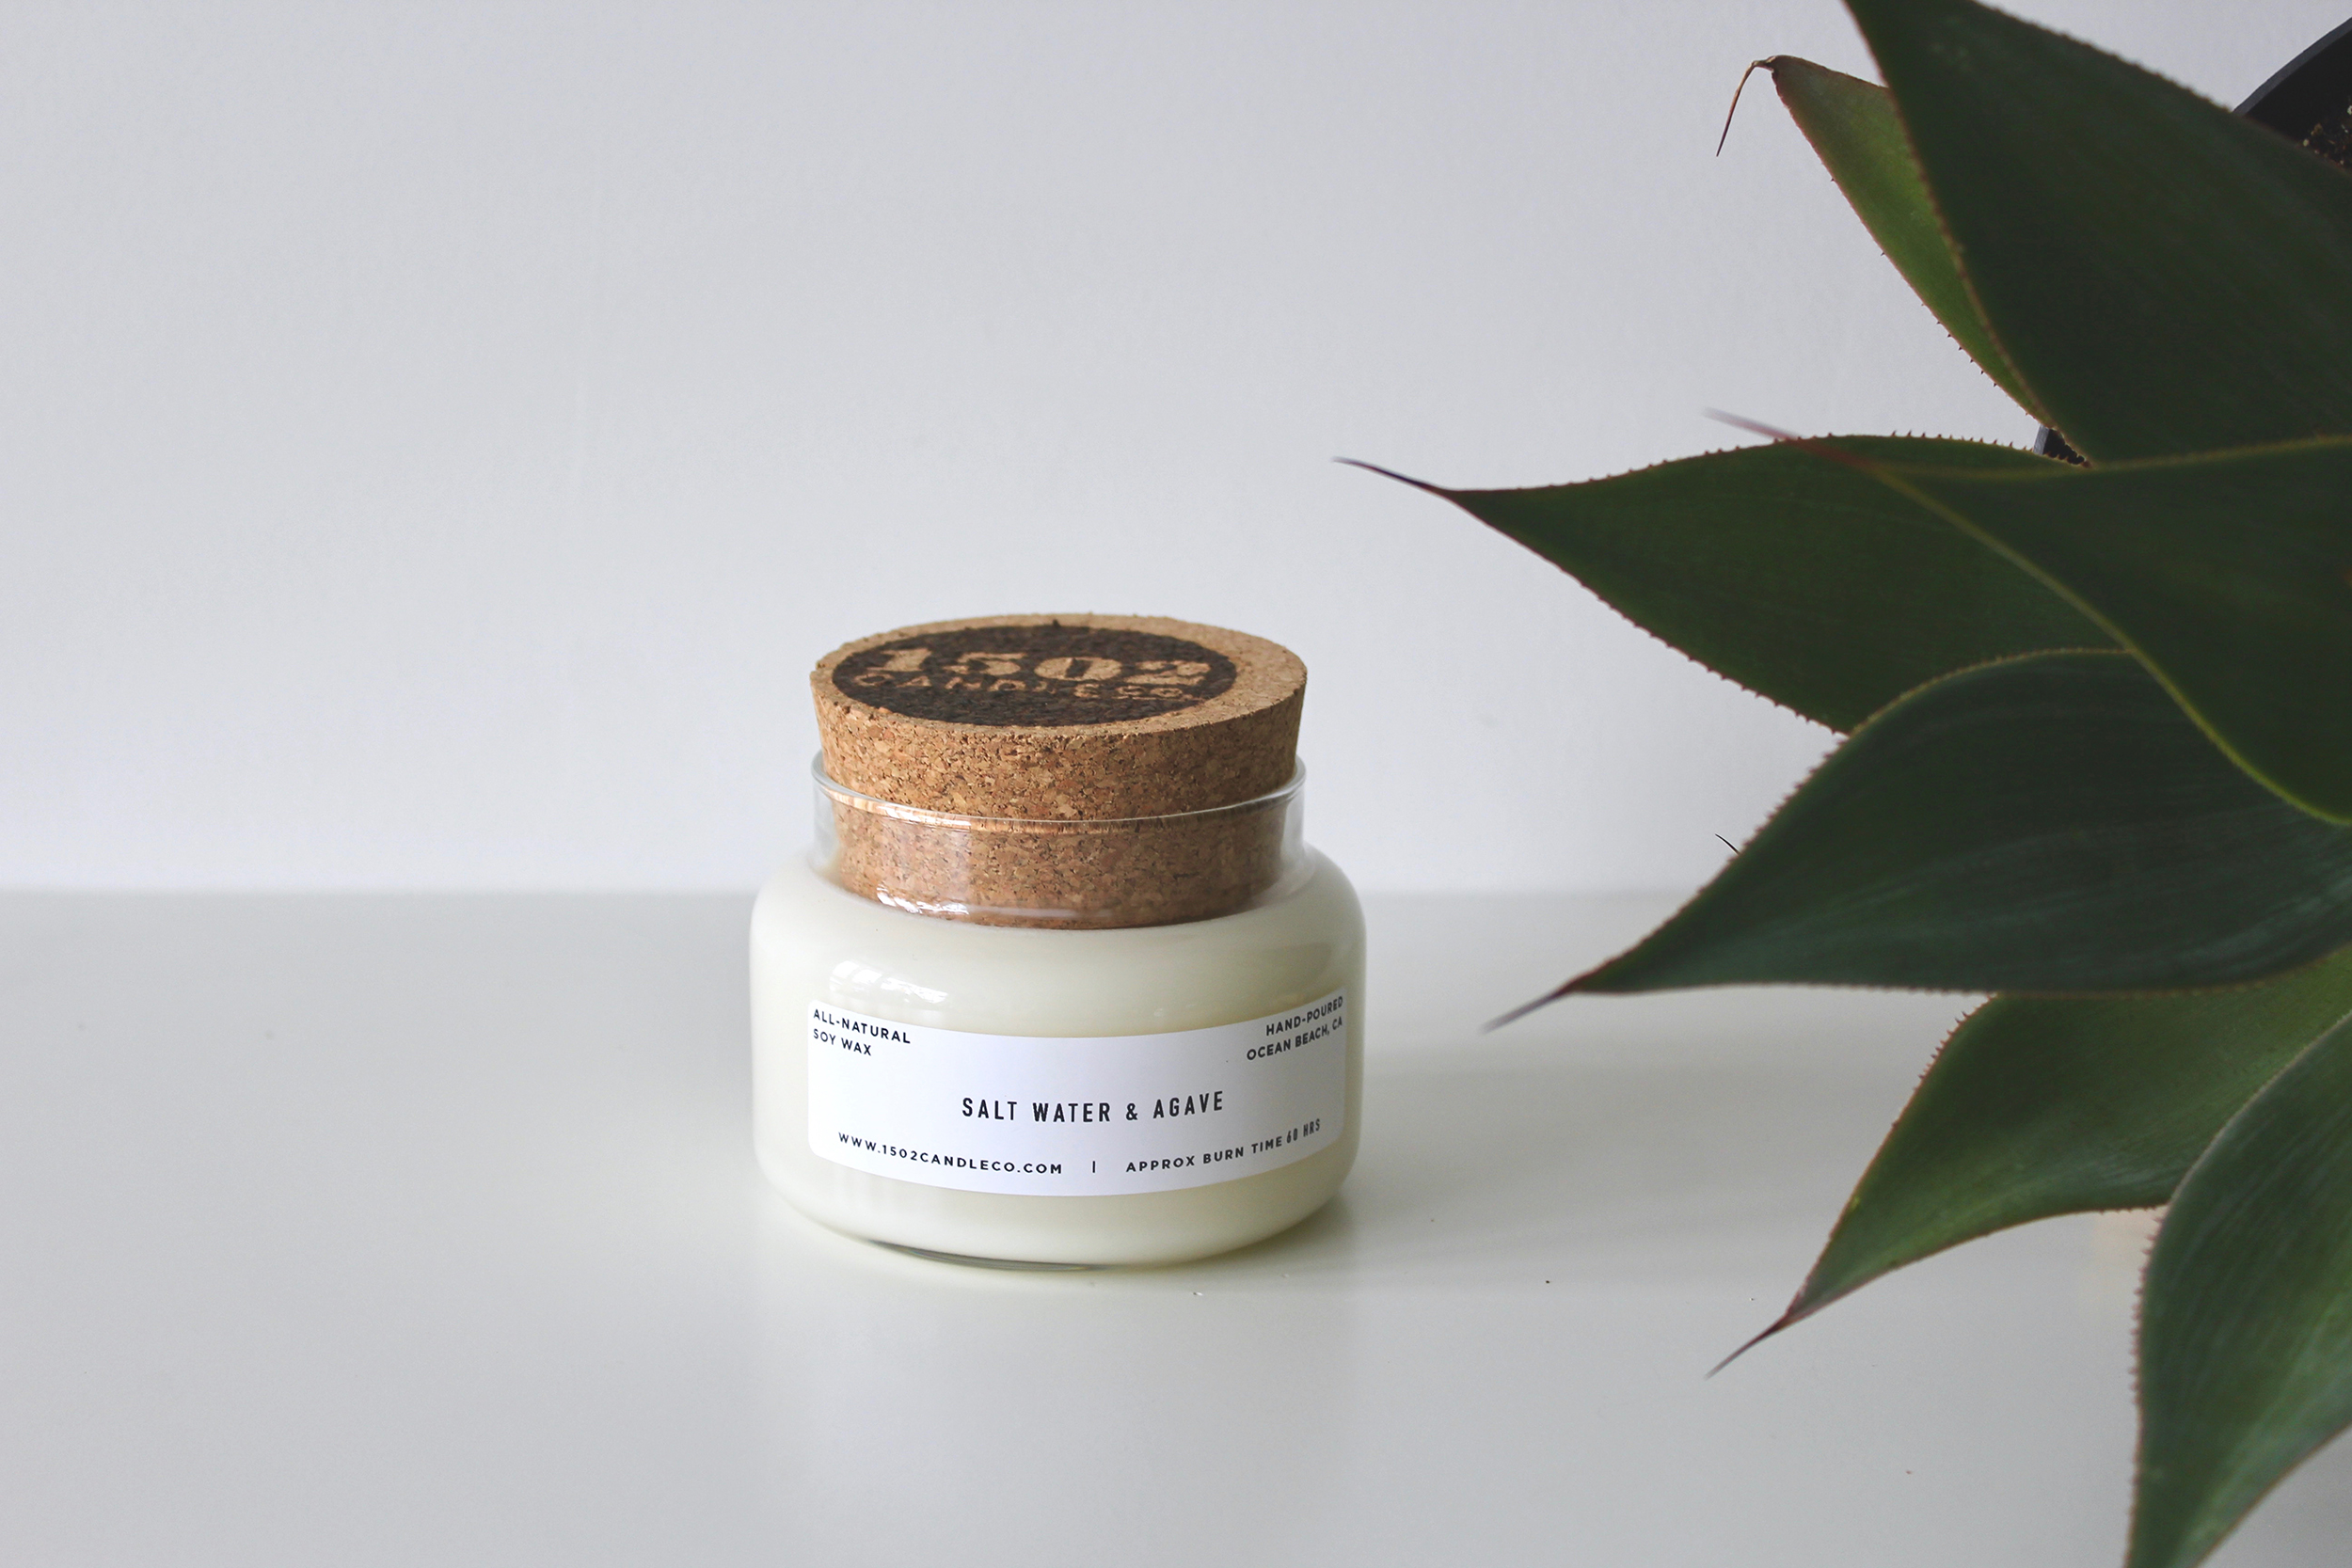 Salt Water Agave Soy Candle 15 Oz Apothecary Jar 1502 Candle Co